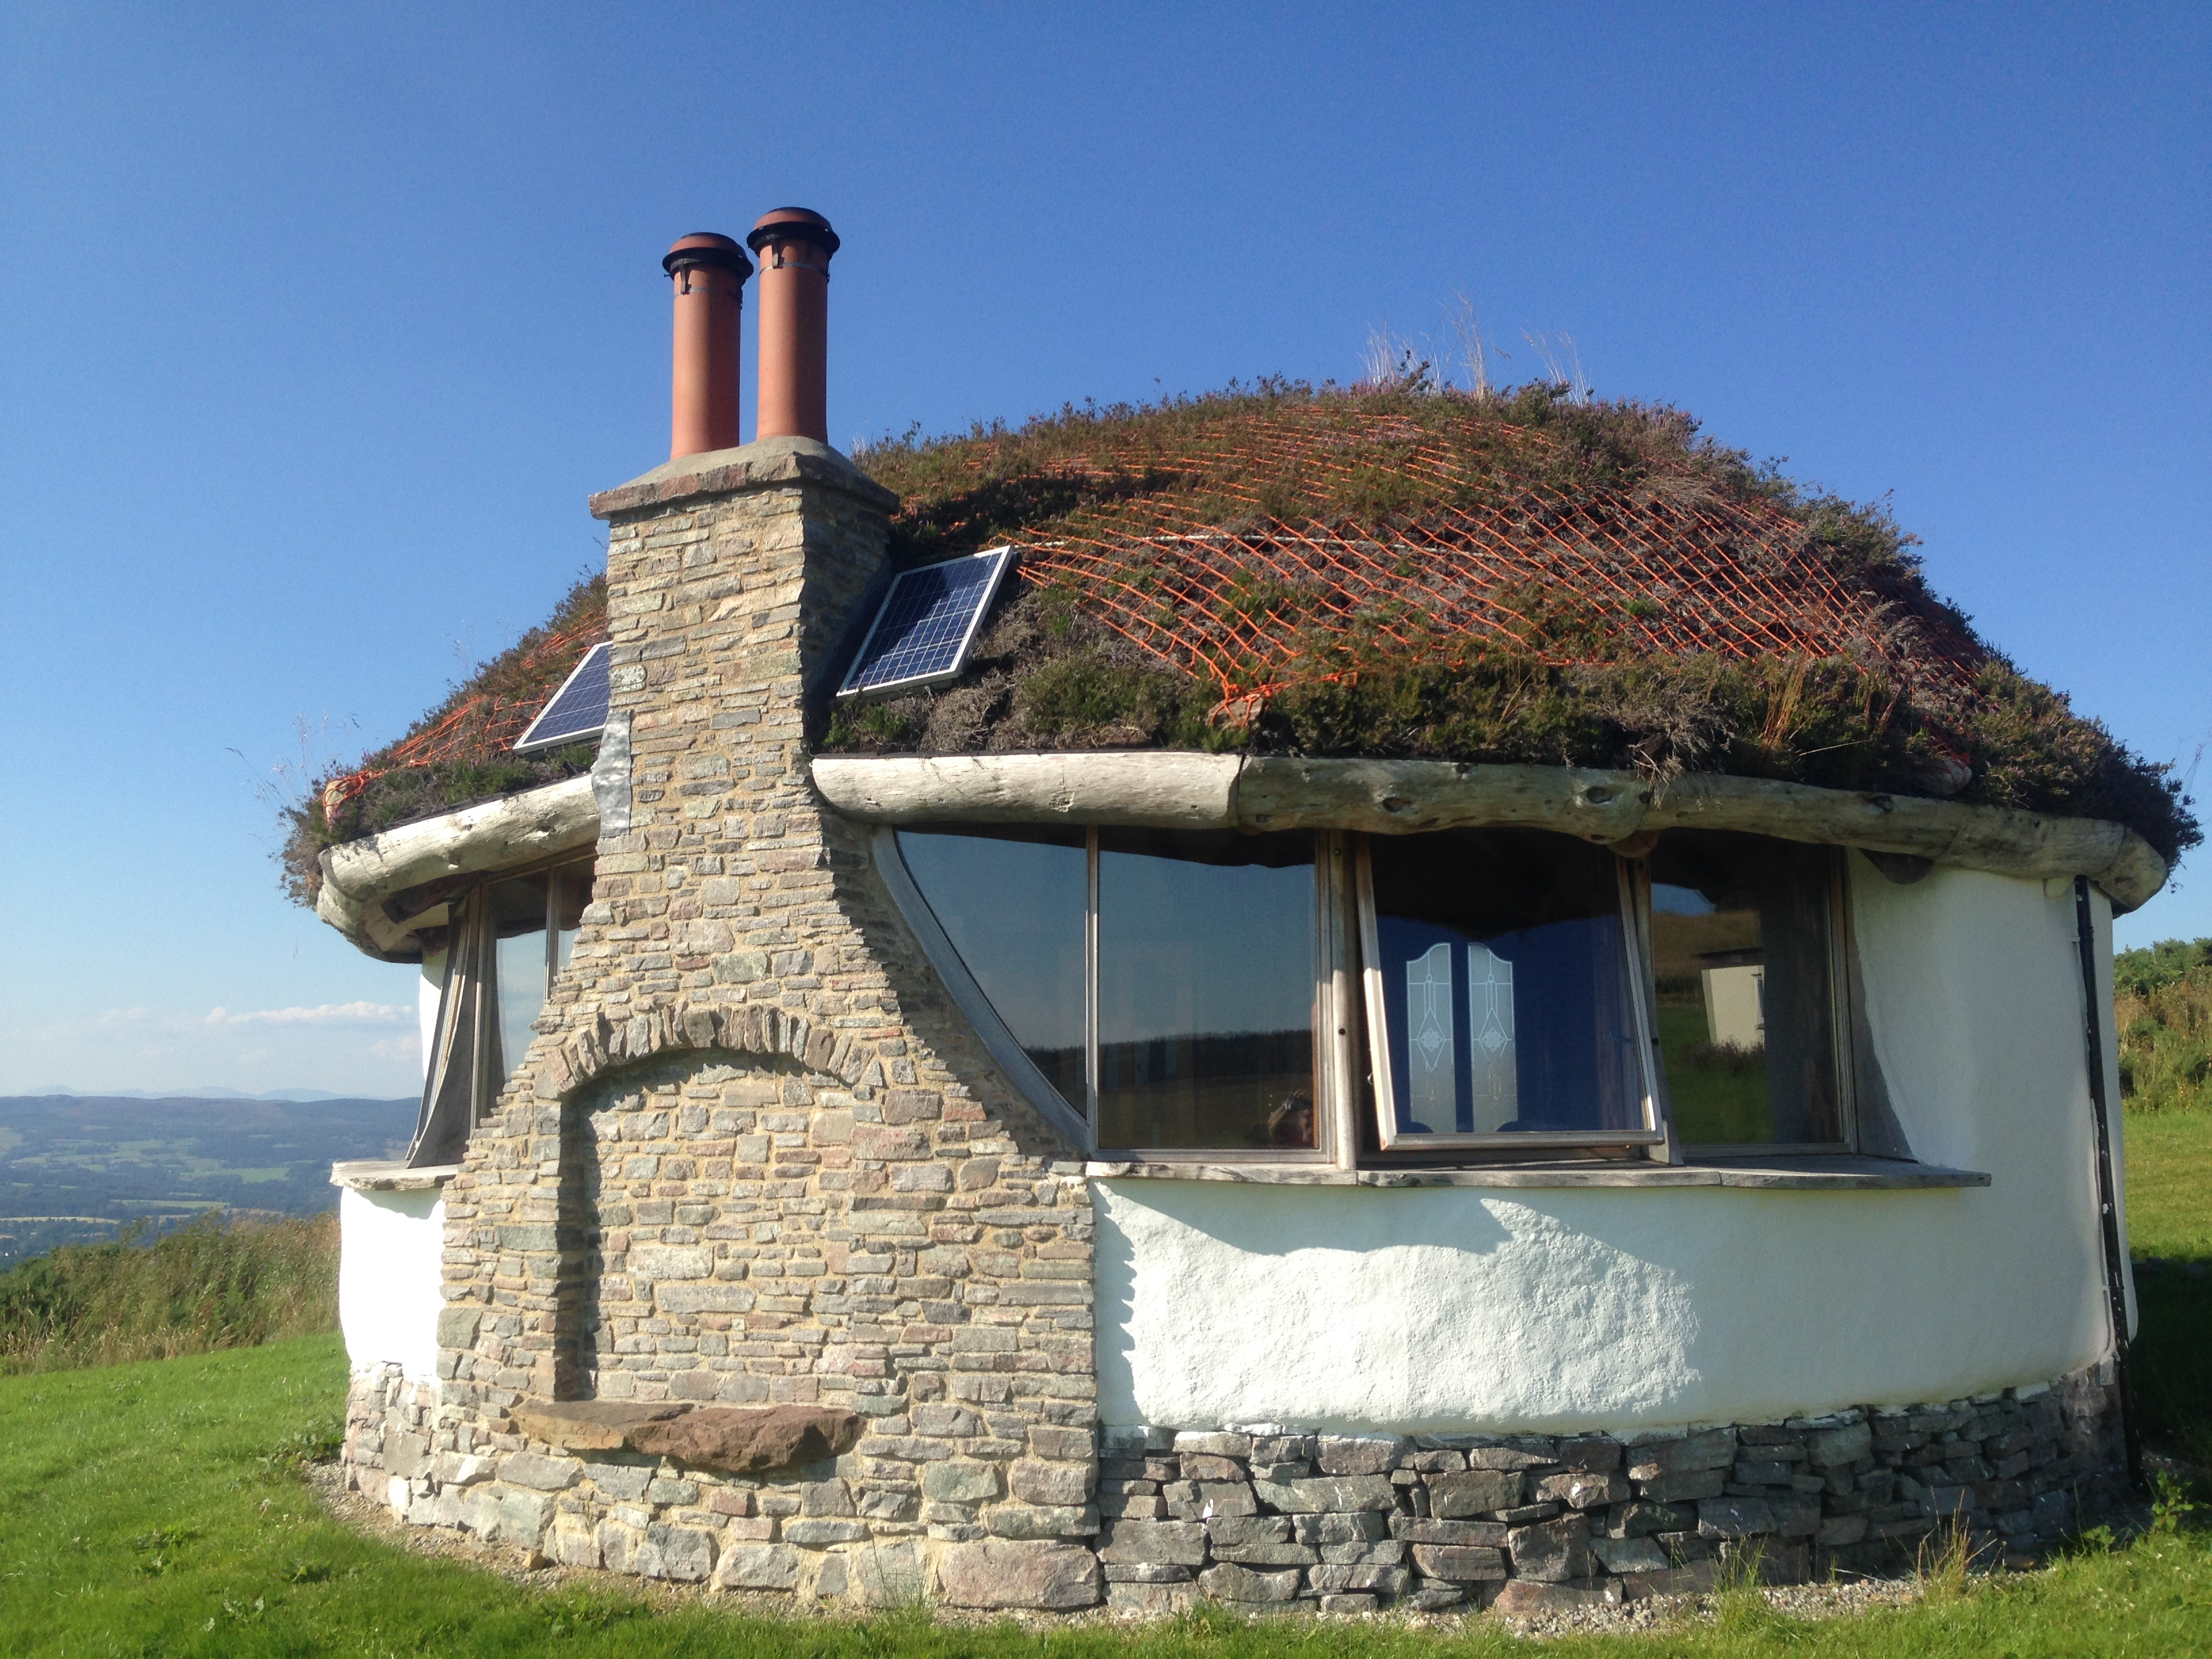 The Straw Bale Studio at Moniack Mhor - Scotland's Creative Writing Centre. Image provided by Lee McGowan.